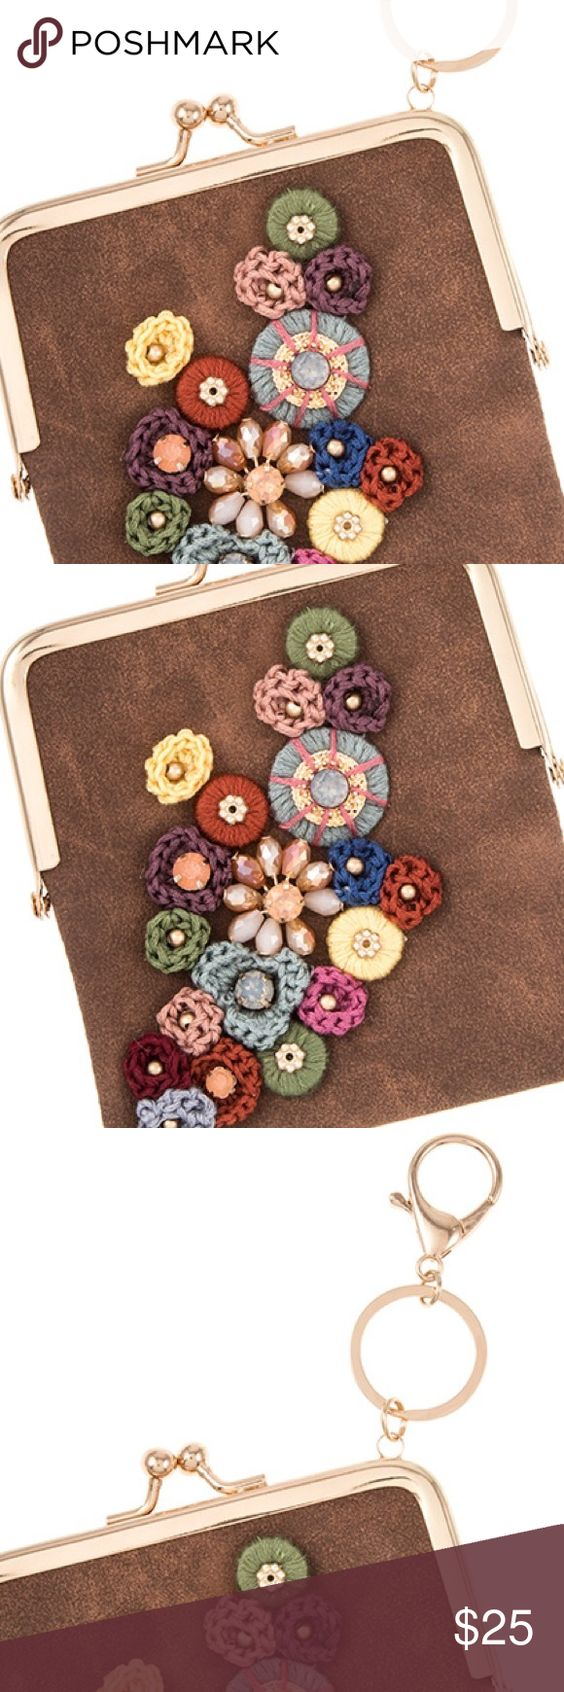 Faux Suede Key Chain Faux Suede floral accent detailed mini bag key chain Other